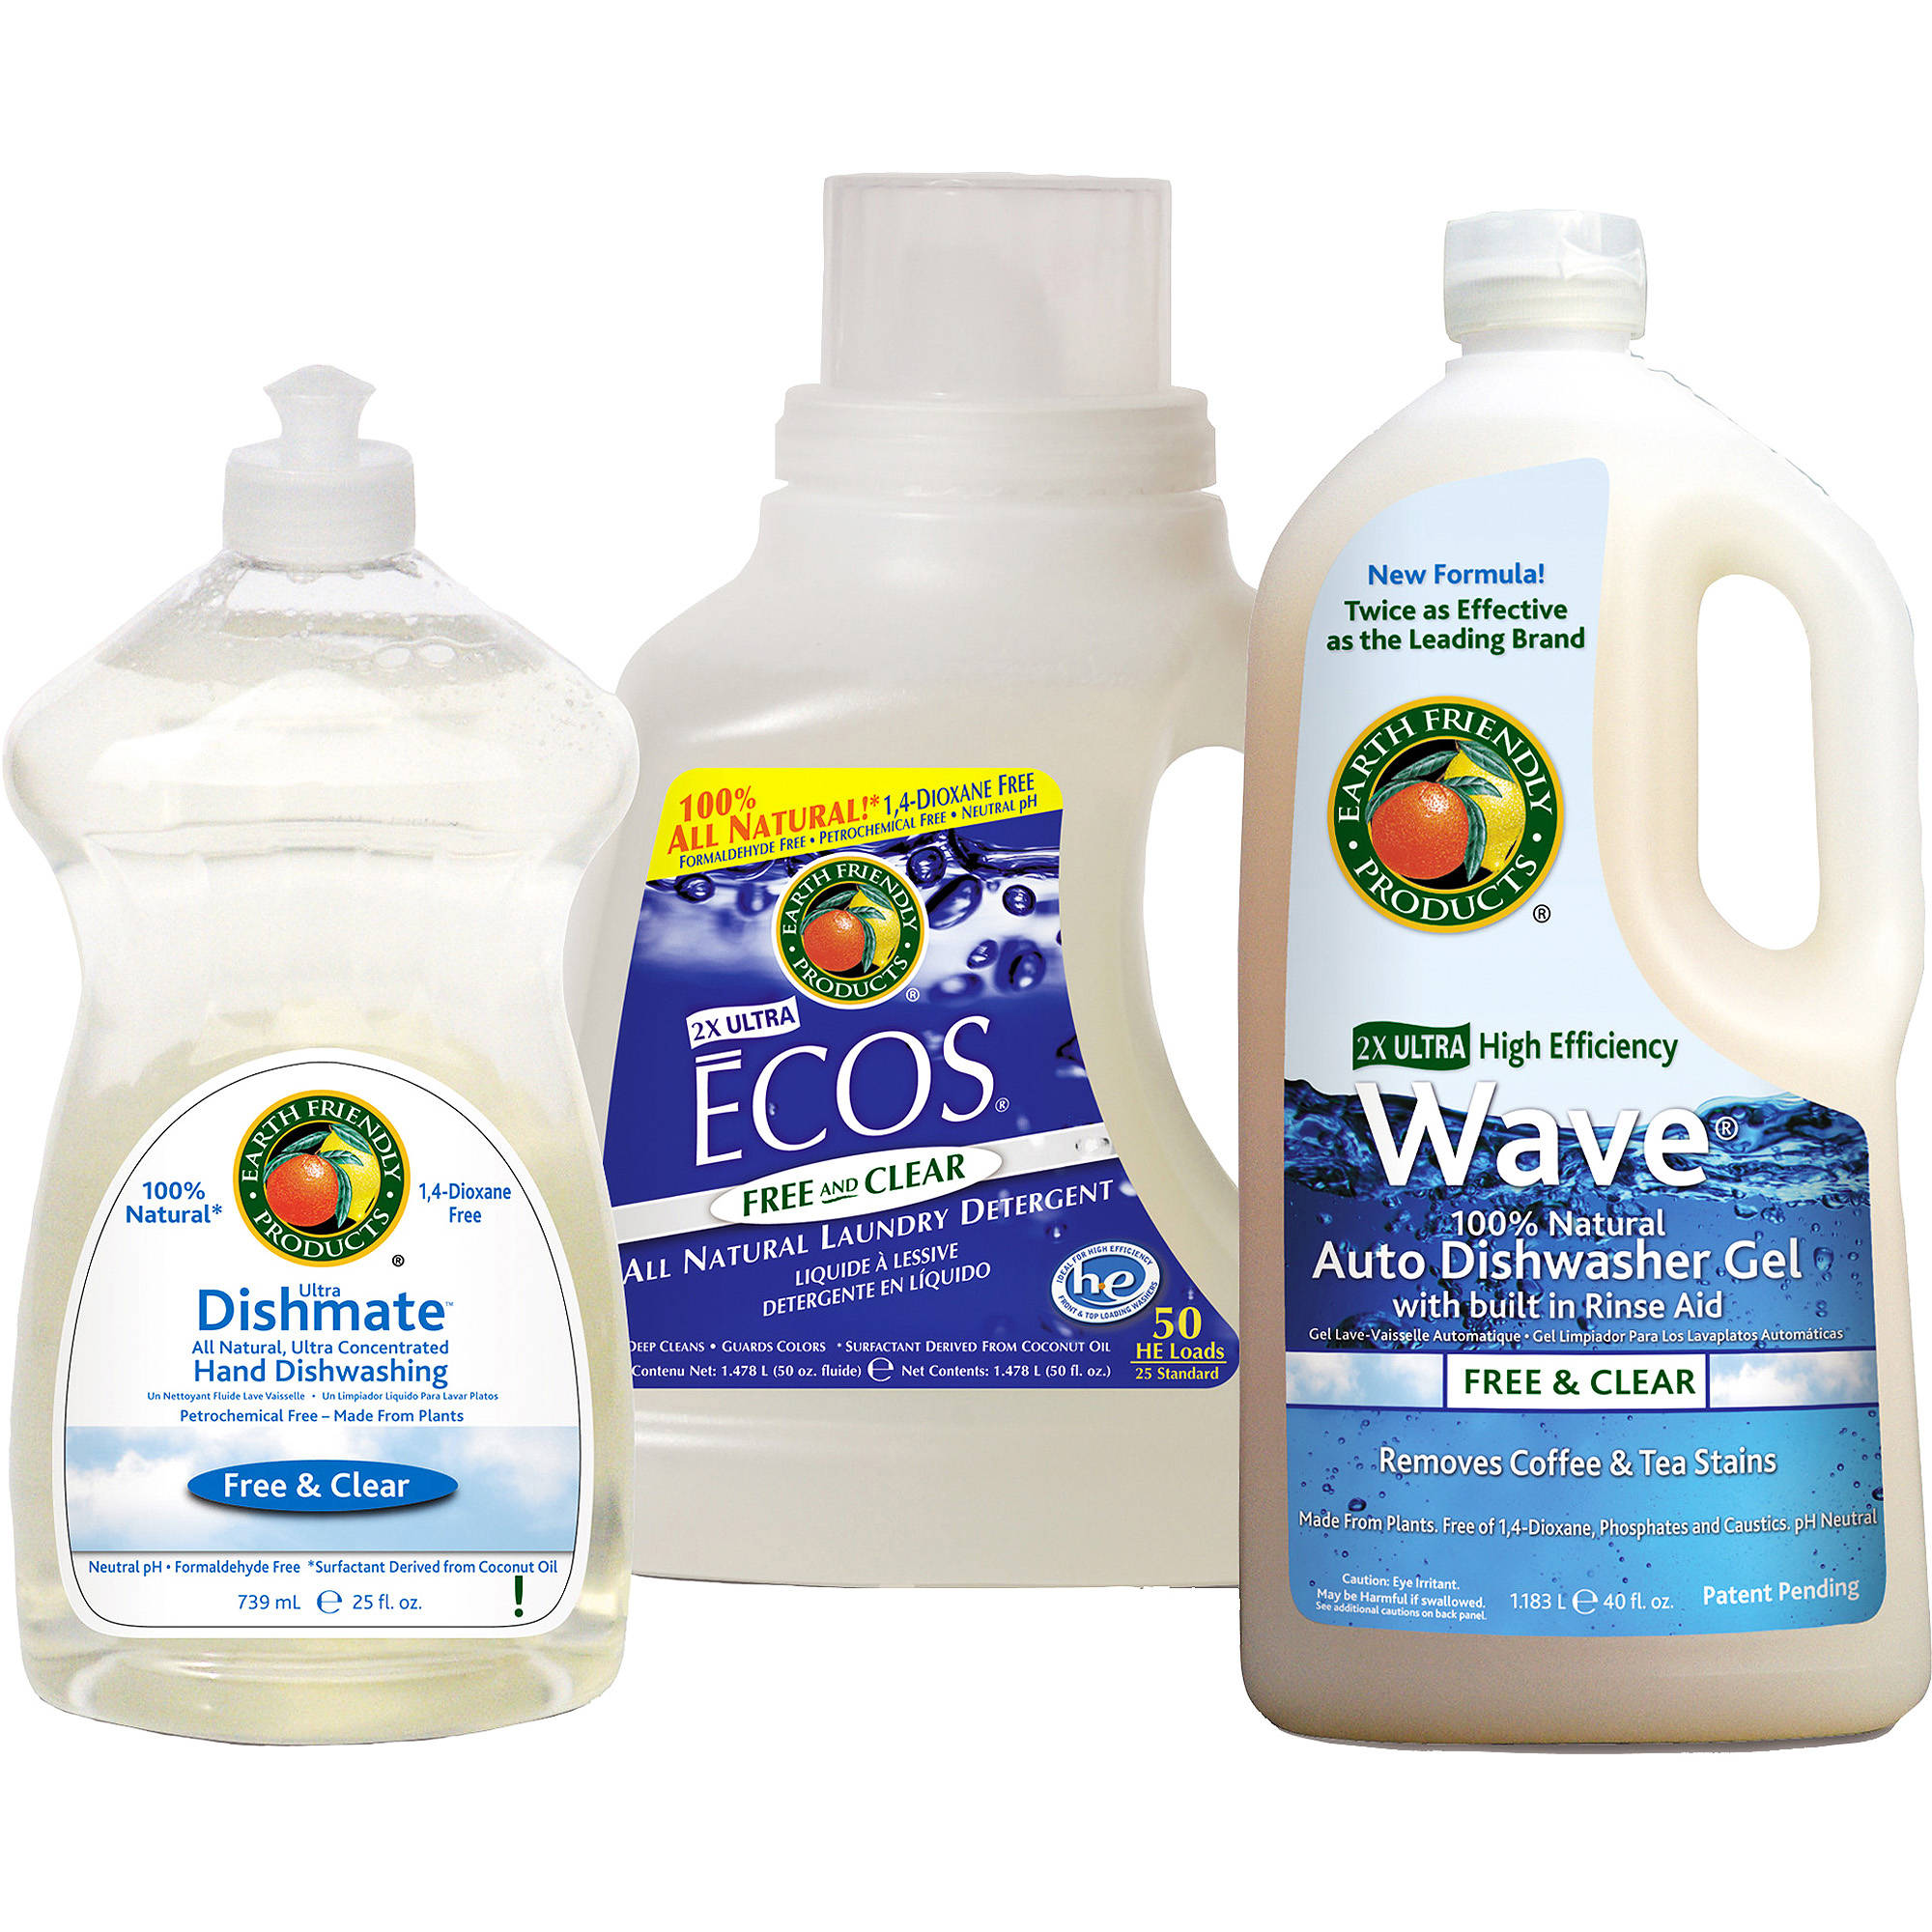 Earth Friendly Products Free & Clear Kit, 1ct